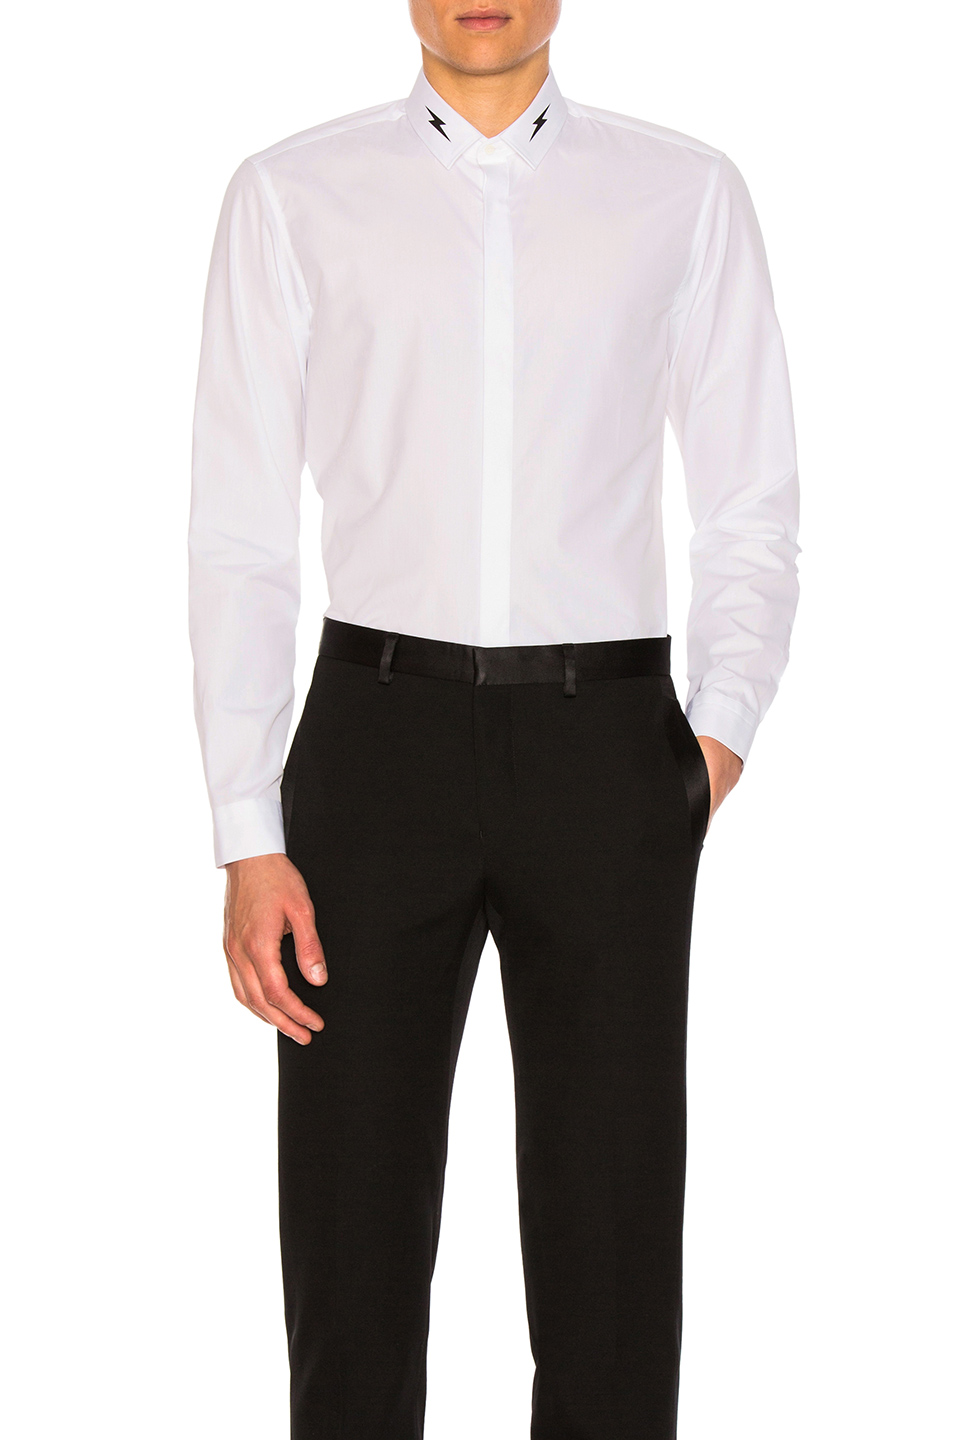 Neil Barrett Thunderbolt Collar Shirt in White